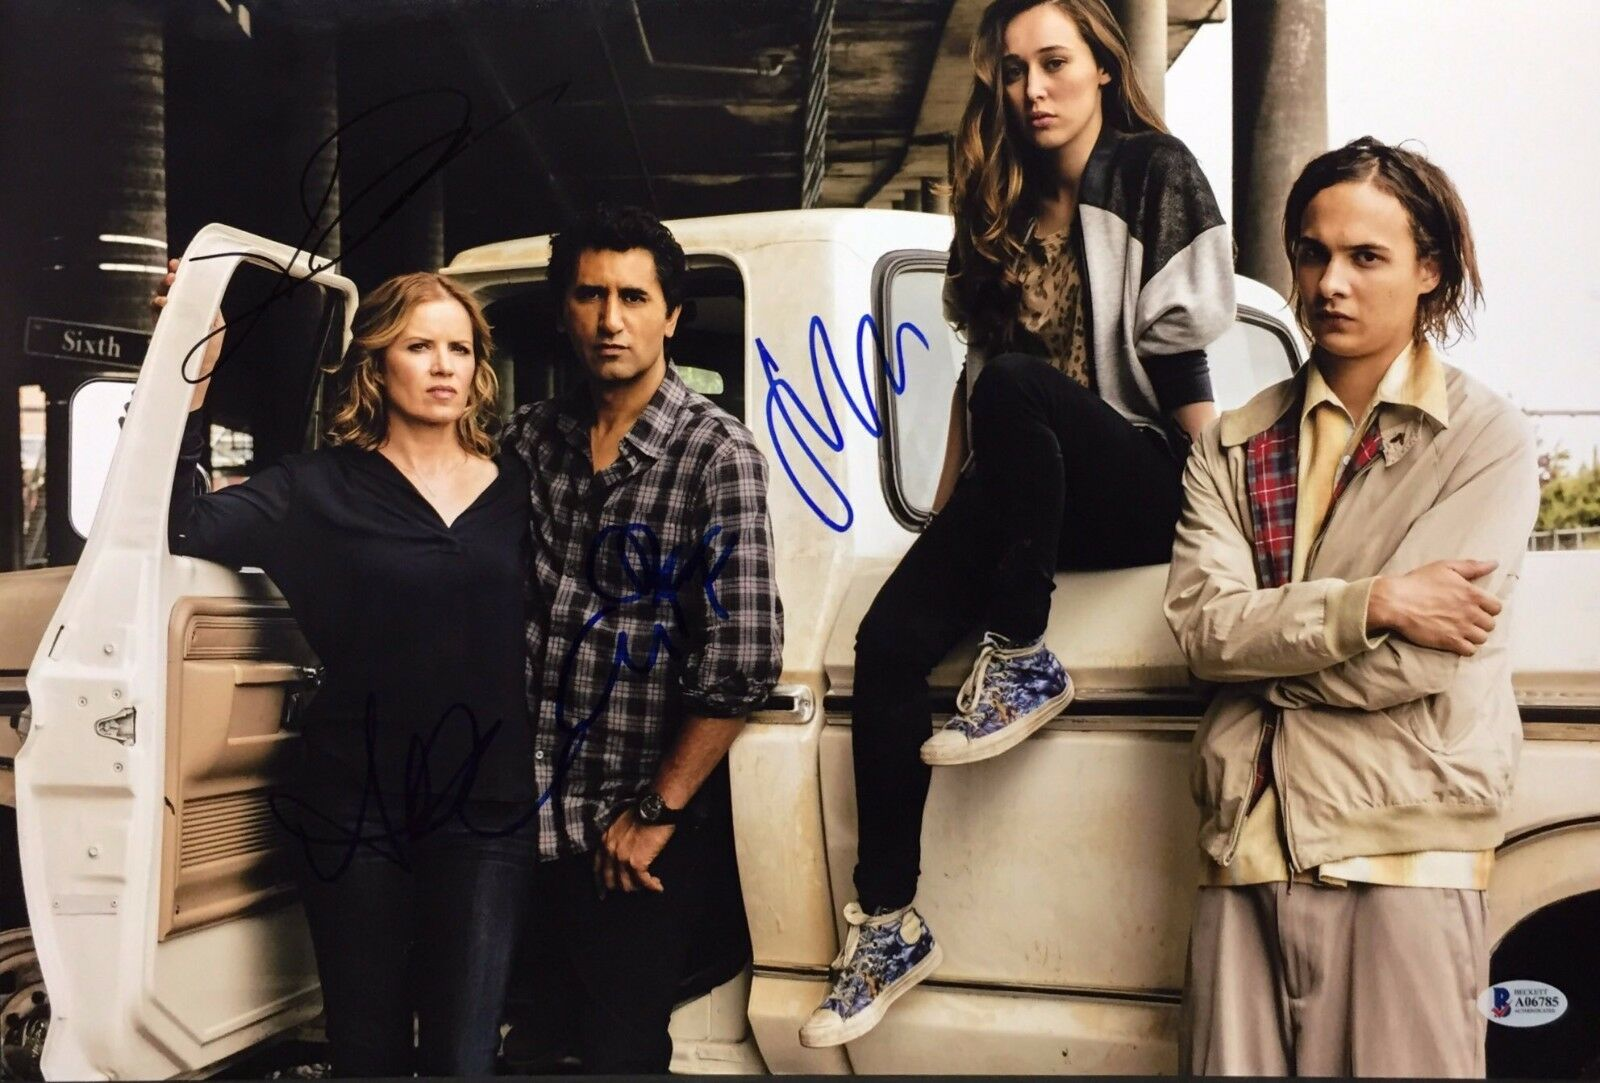 Cliff Curtis F Dillane Alycia D. Carey Kim Signed Walking Dead 12x18 Photo BAS